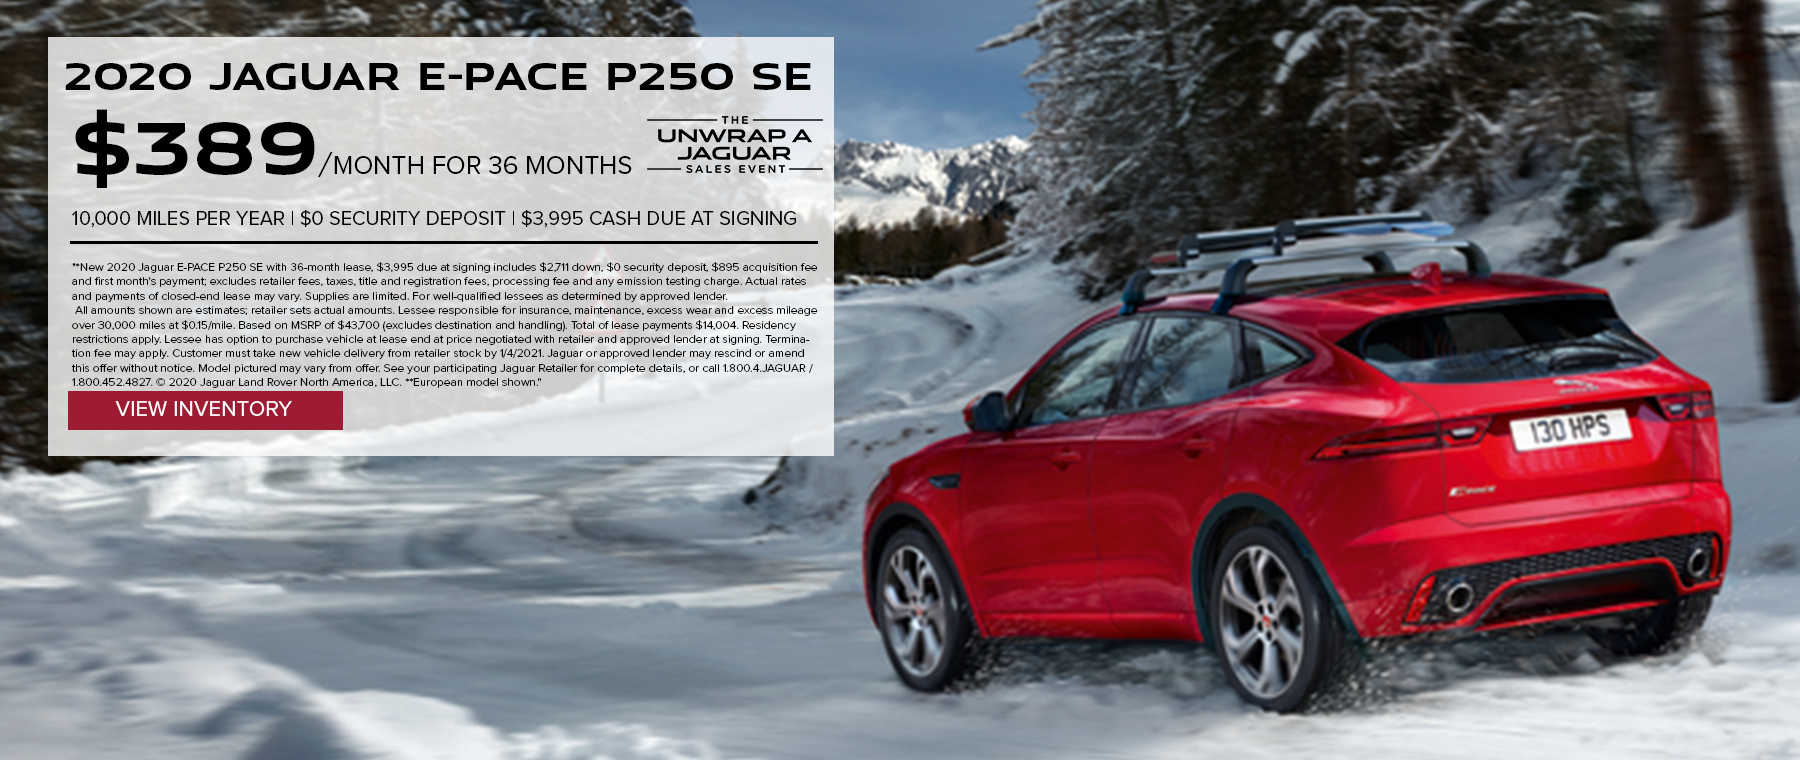 2020 JAGUAR E-PACE P250 SE. $389 PER MONTH. 36 MONTH LEASE TERM. $3,995 CASH DUE AT SIGNING. $0 SECURITY DEPOSIT. 10,000 MILES PER YEAR. EXCLUDES RETAILER FEES, TAXES, TITLE AND REGISTRATION FEES, PROCESSING FEE AND ANY EMISSION TESTING CHARGE. OFFER ENDS 1/4/2021.